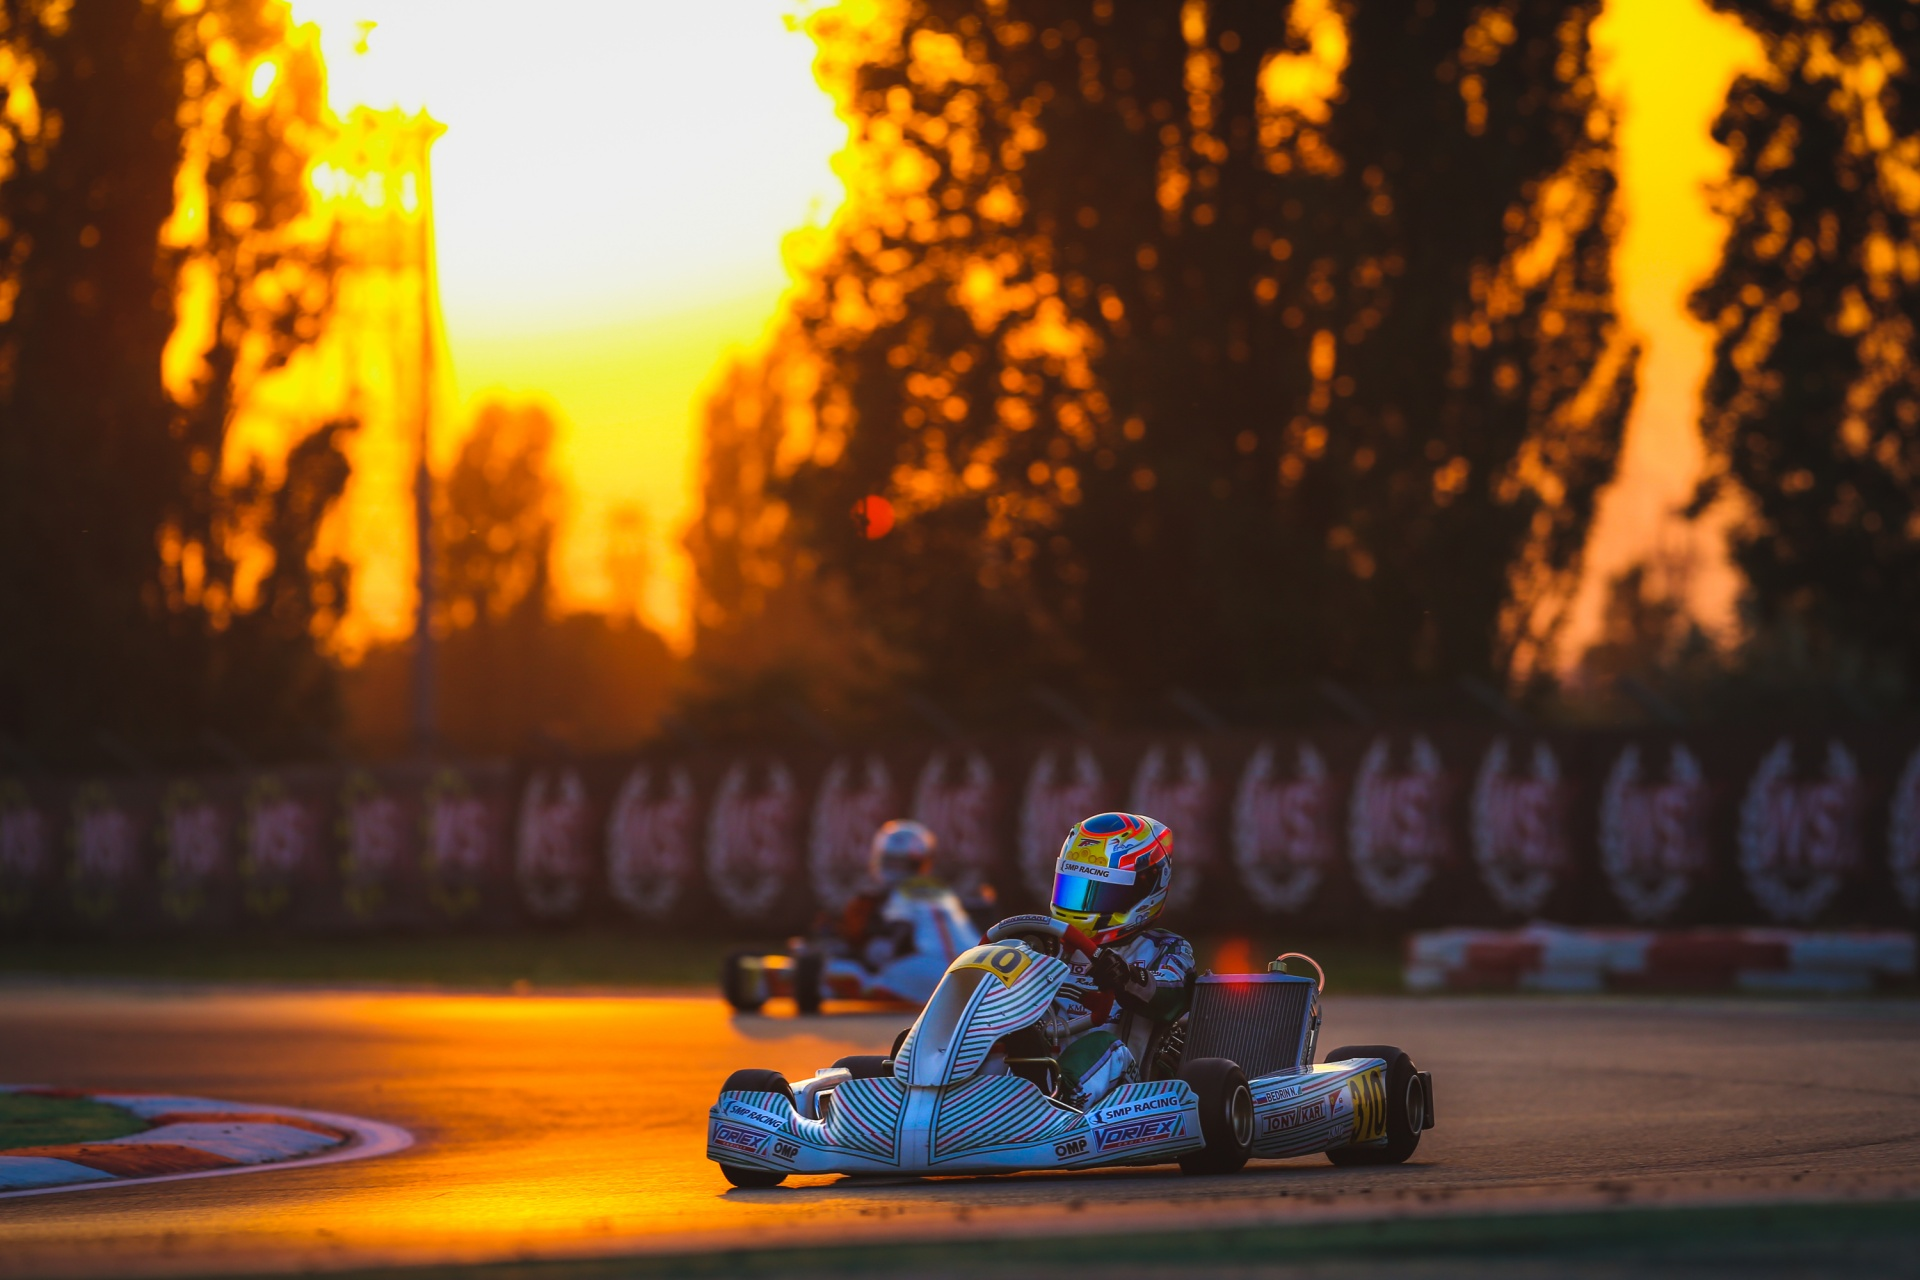 WSK Open Cup rd.2 - Qualifiche